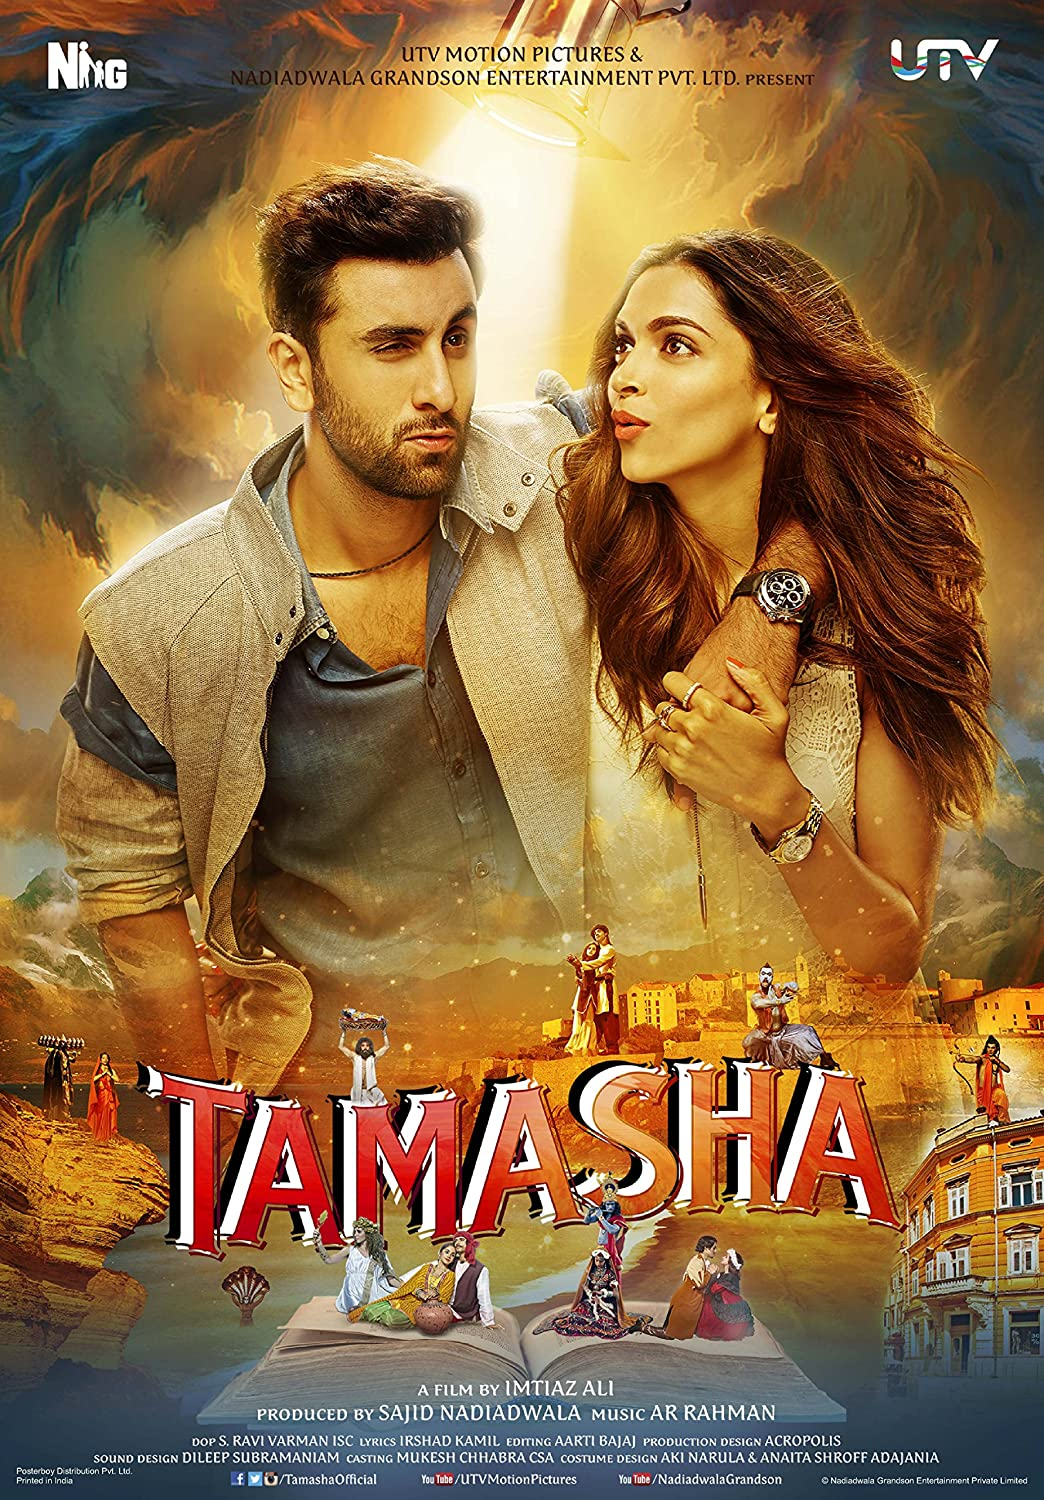 Tamasha (2015) Hindi 720p WEB-DL x264 AAC 1.2GB ESub